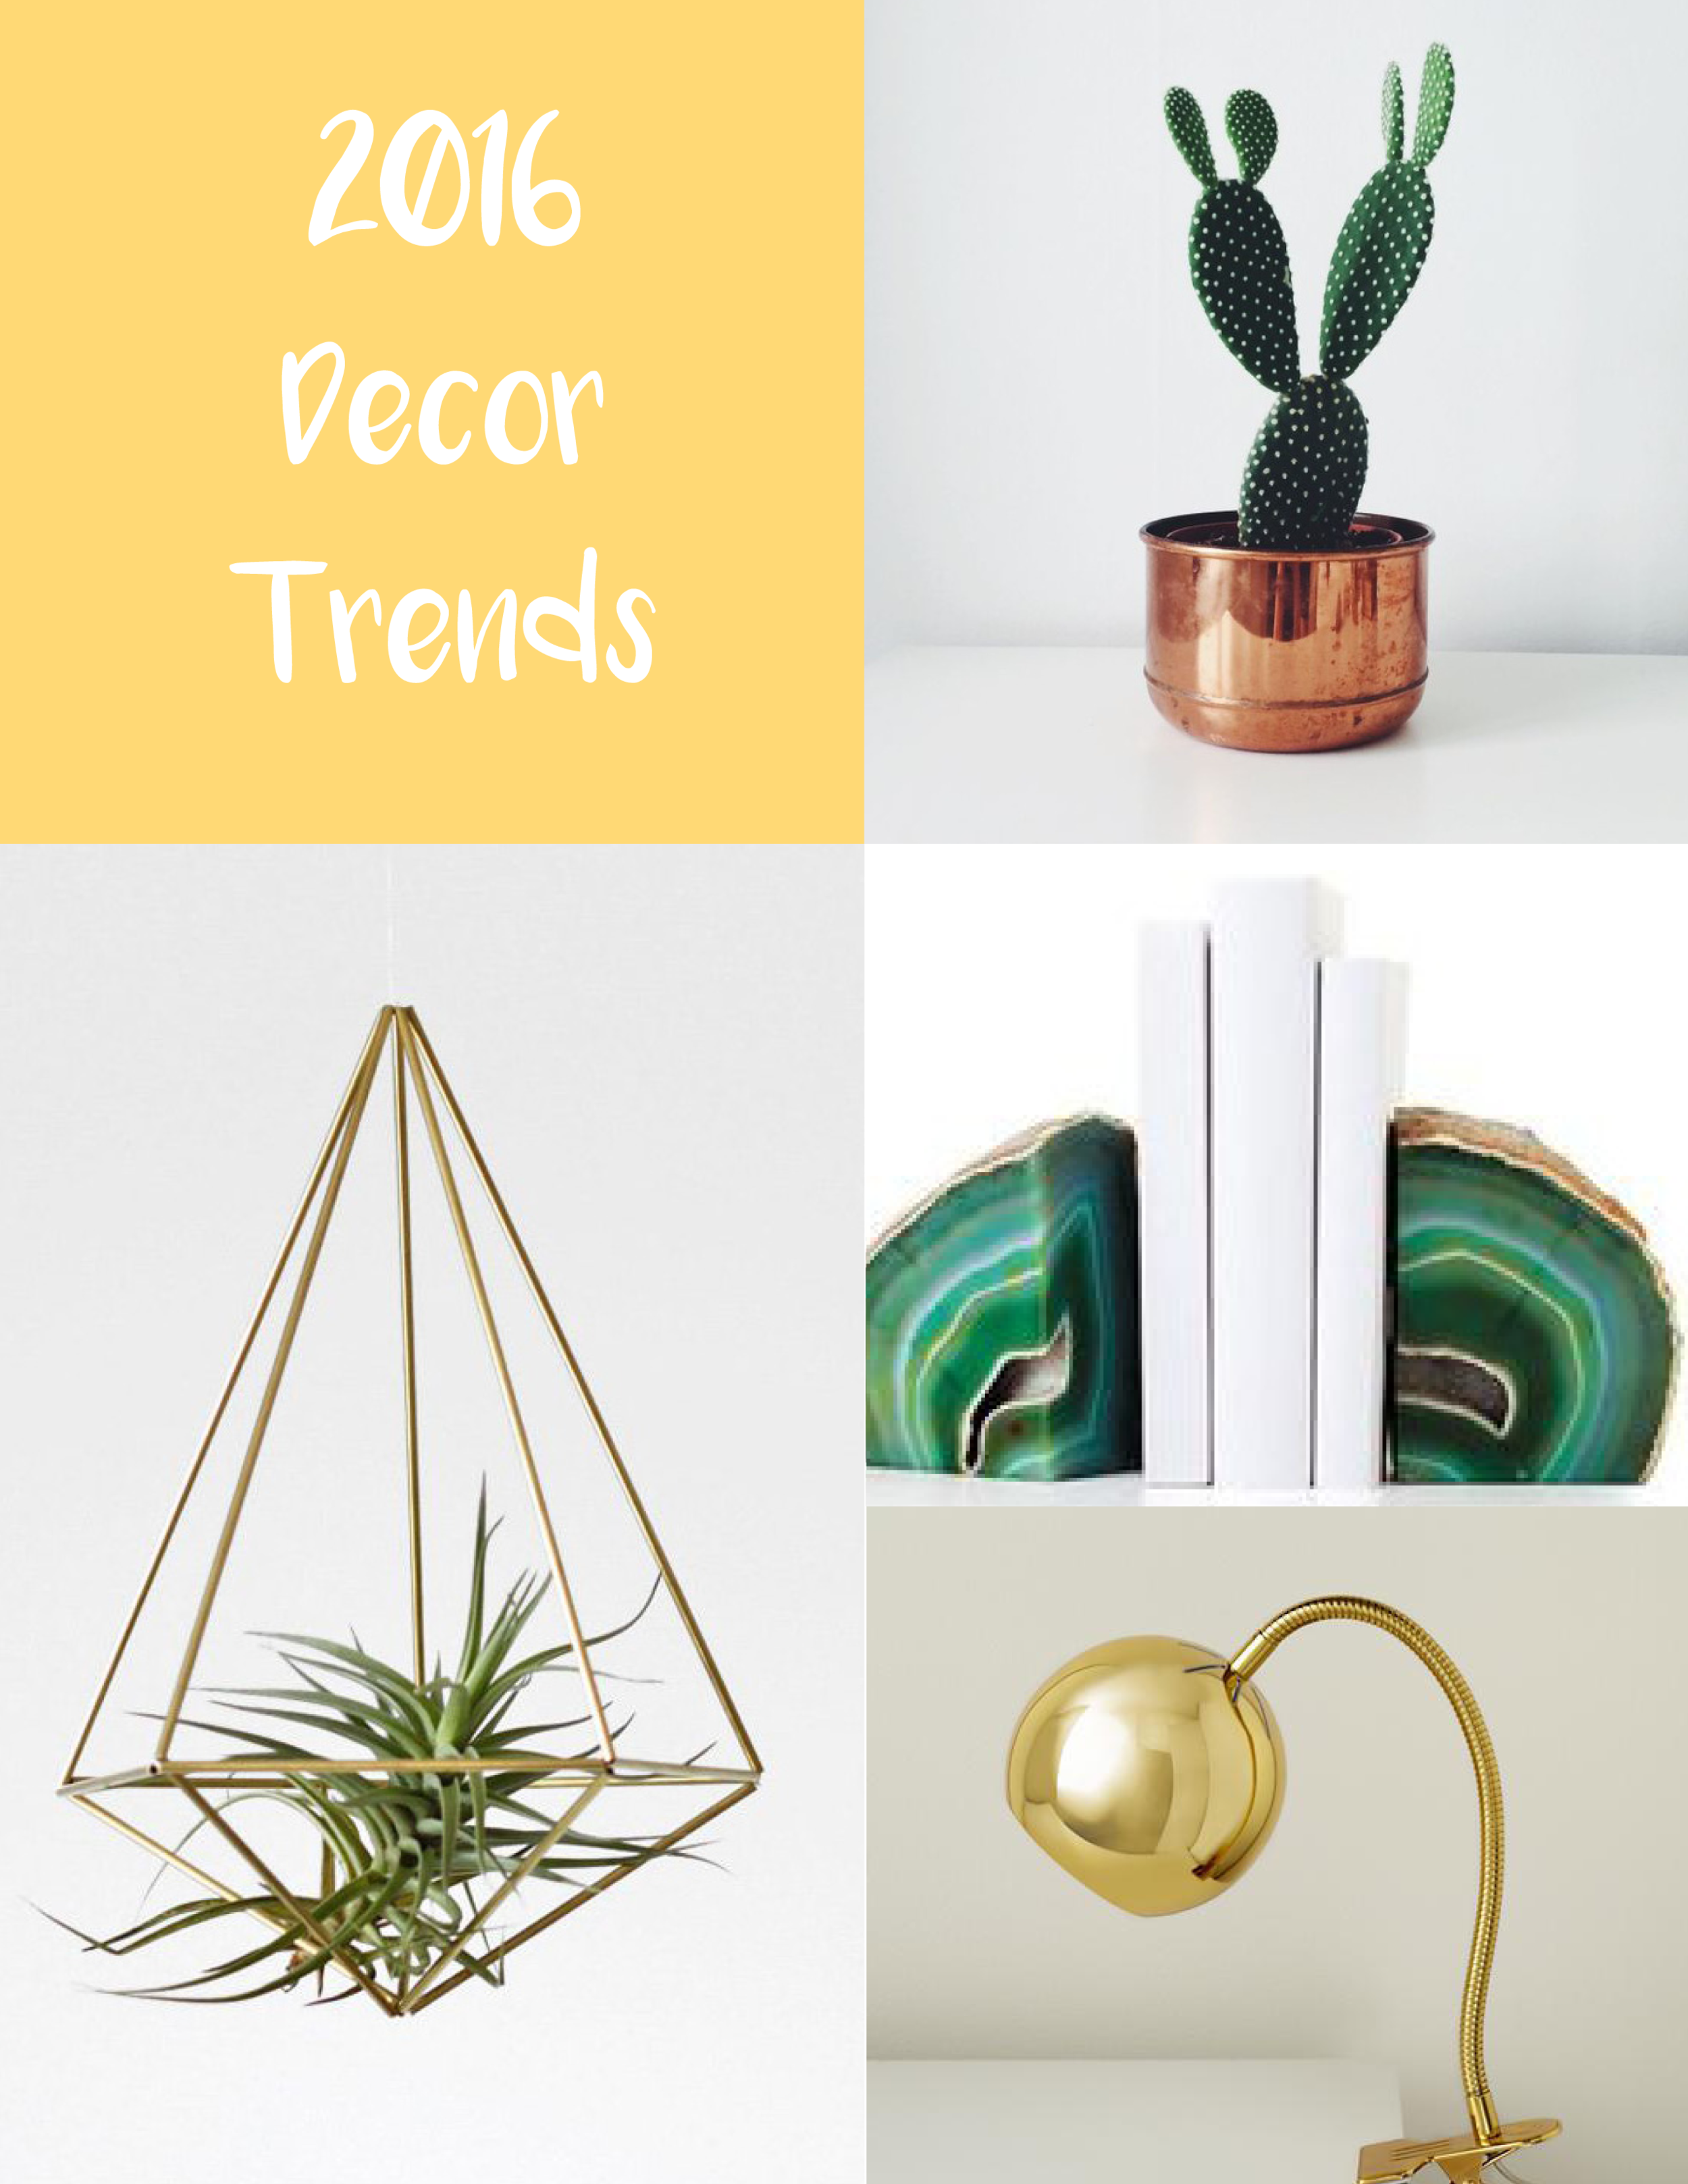 2016 Design Trends - Get a head start by knowing now what's hot next year!